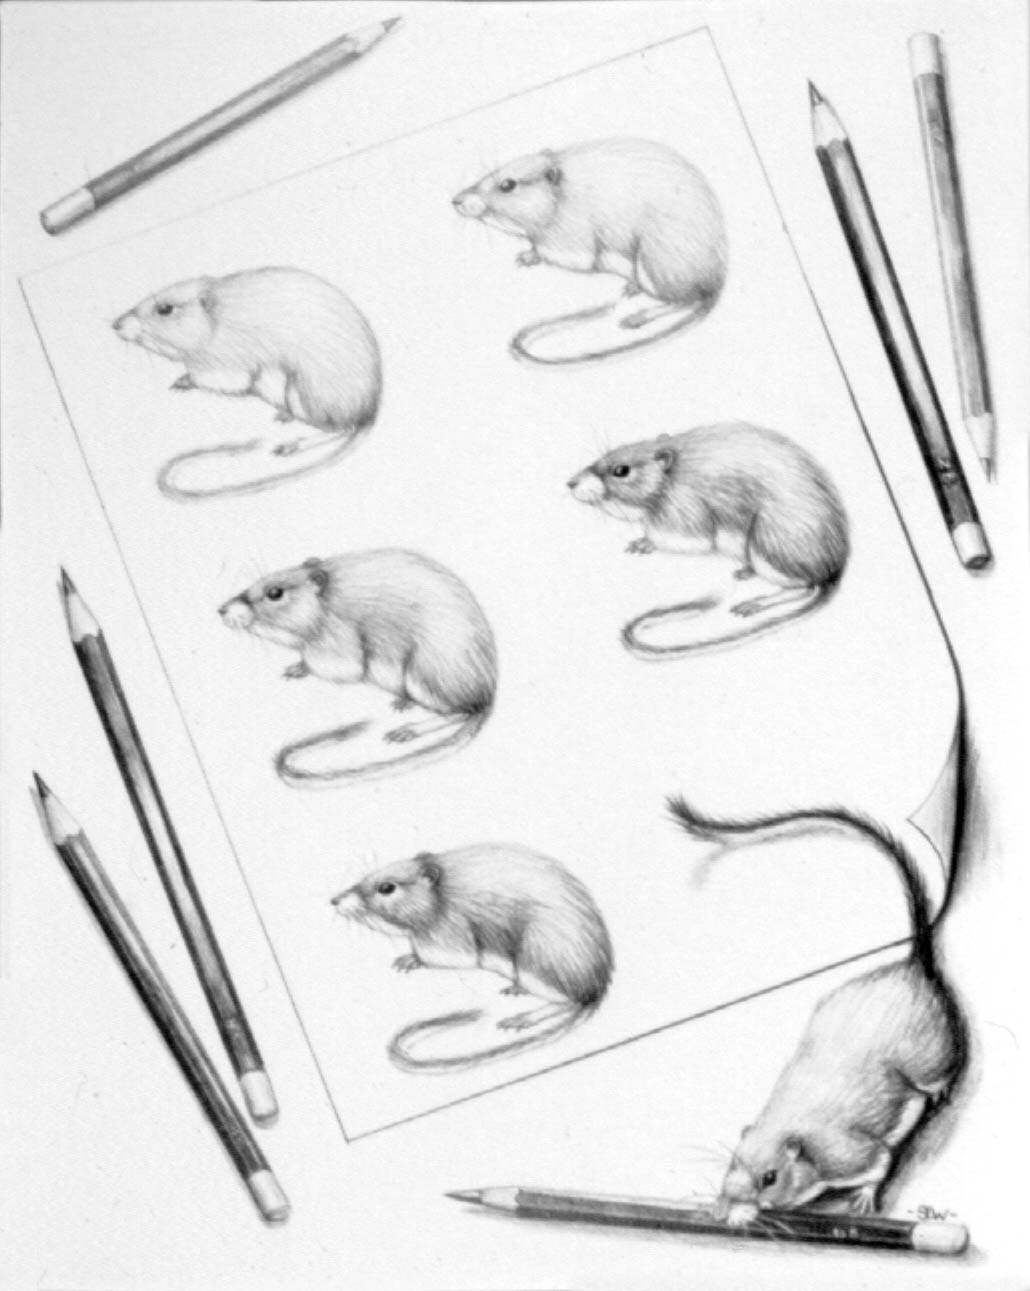 Field Guide Mice